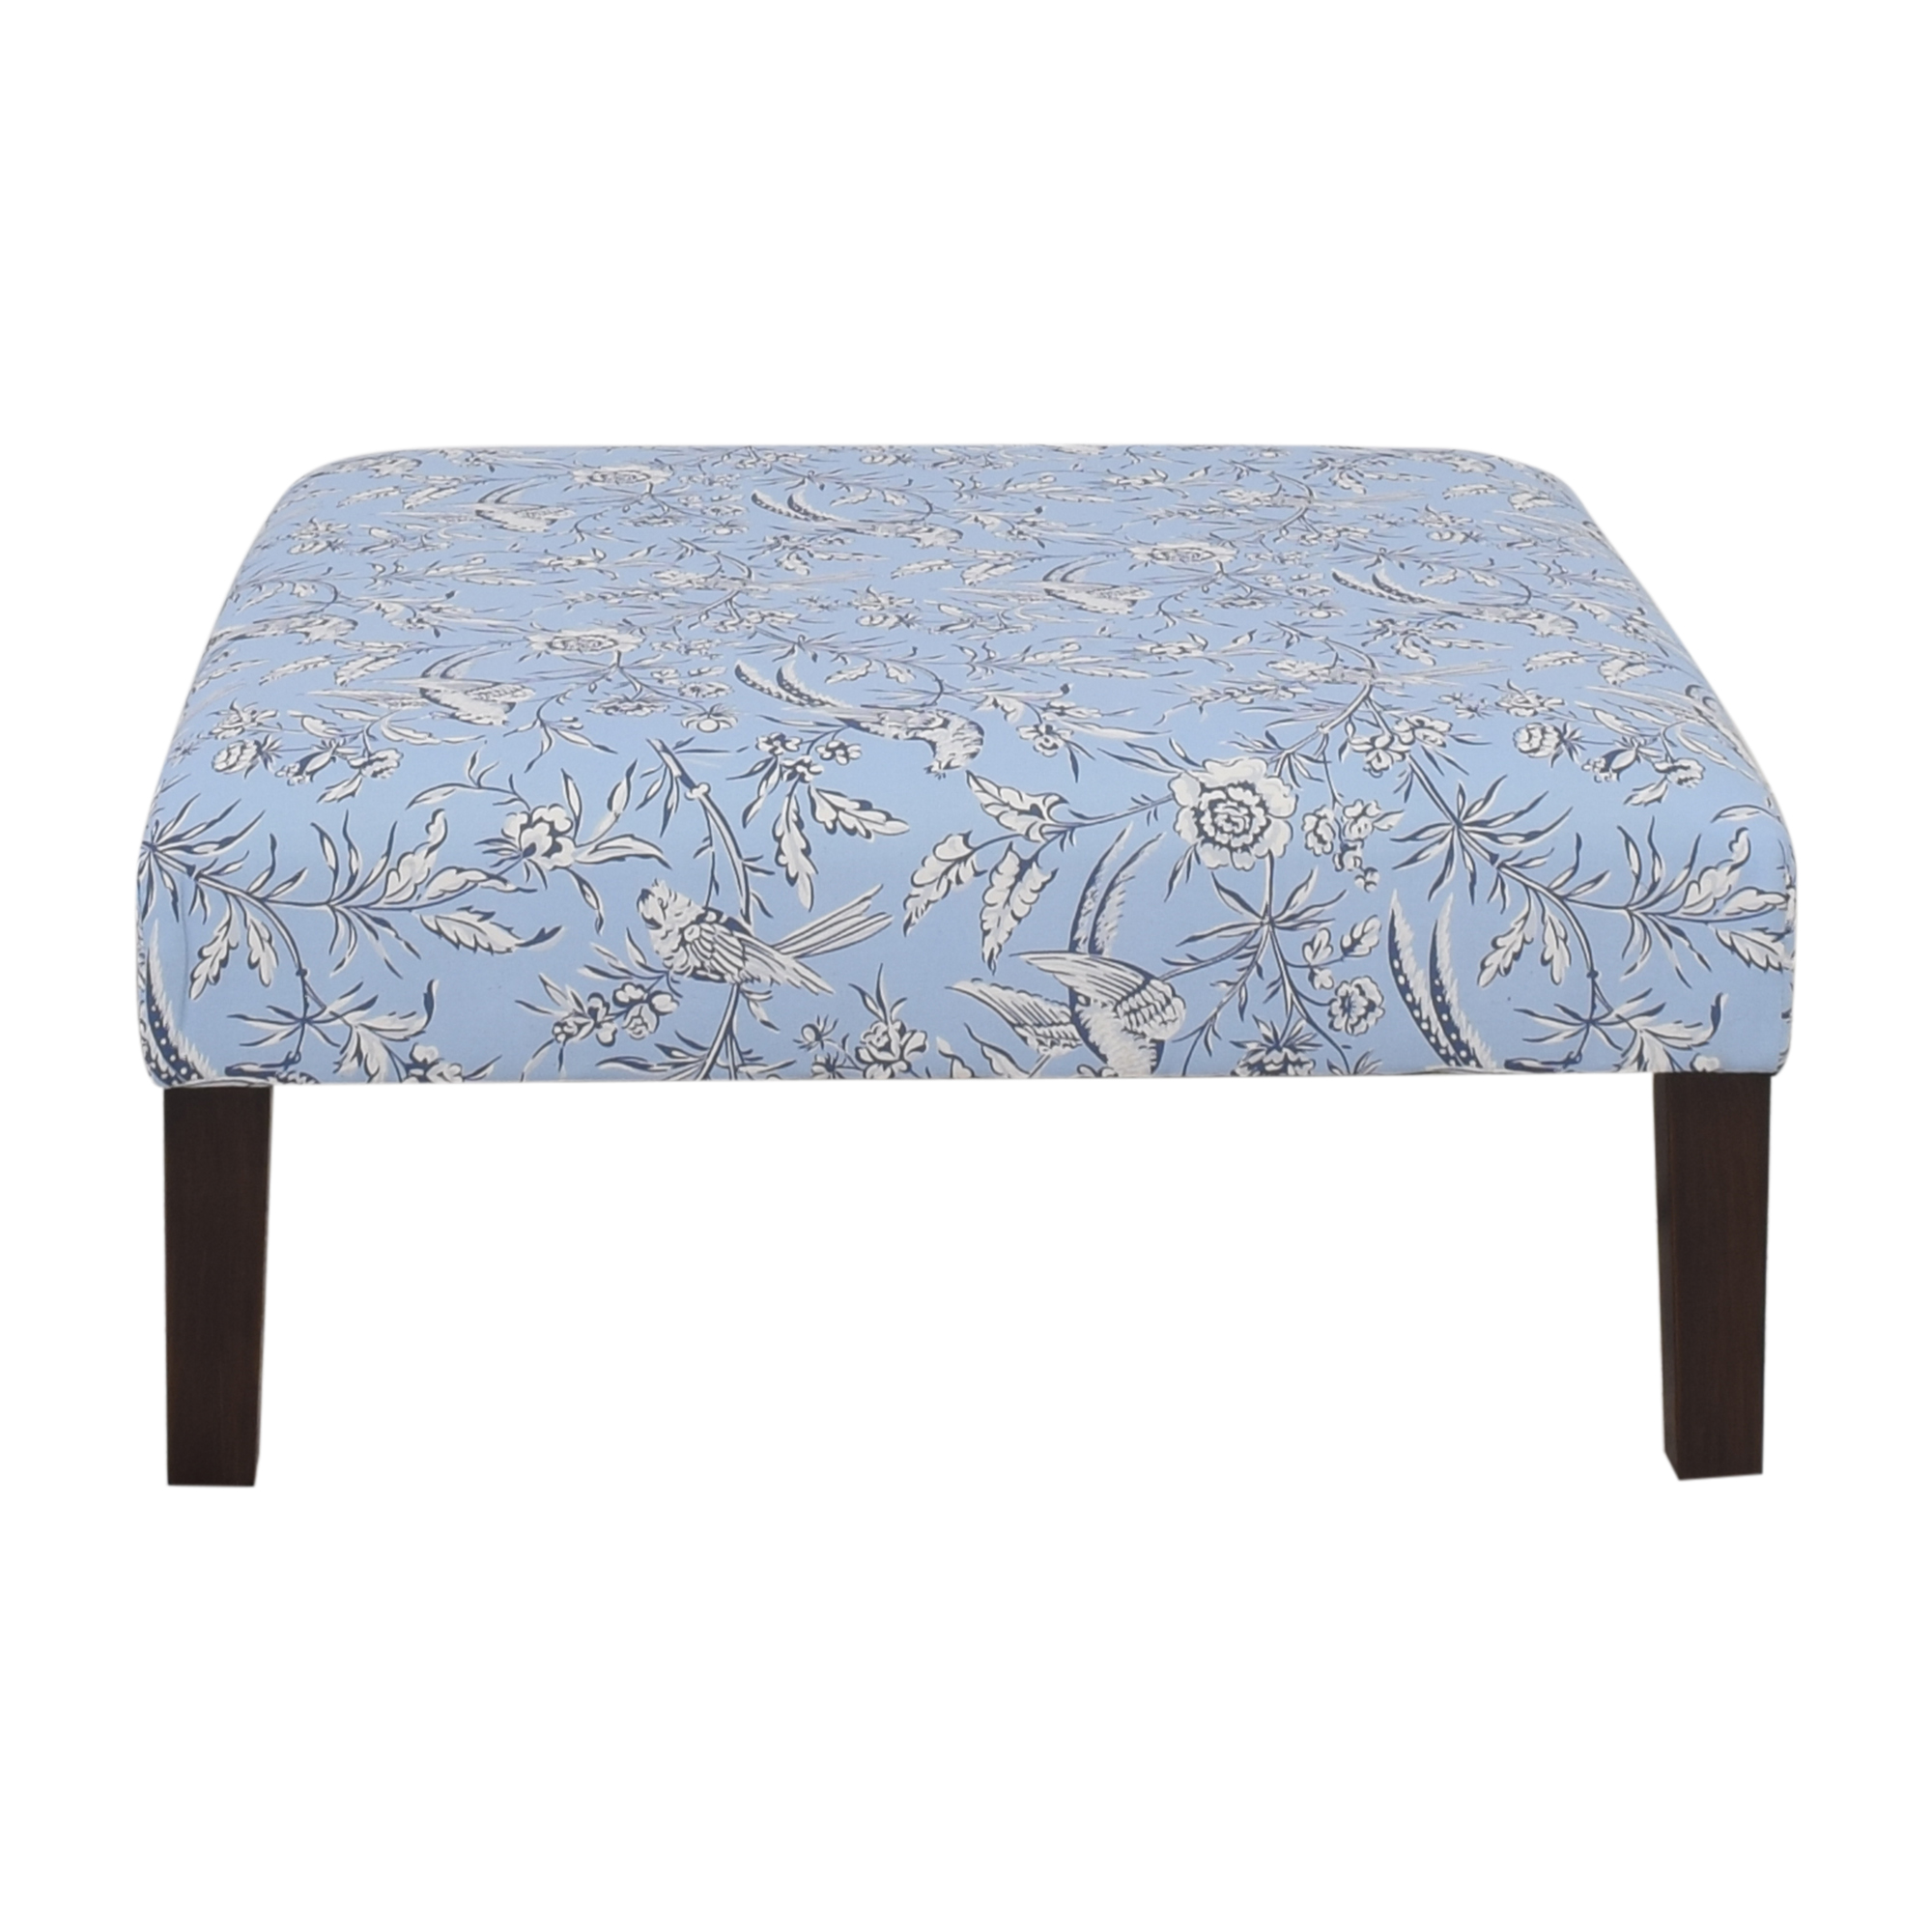 The Inside Blue Aviary Cocktail Ottoman / Chairs